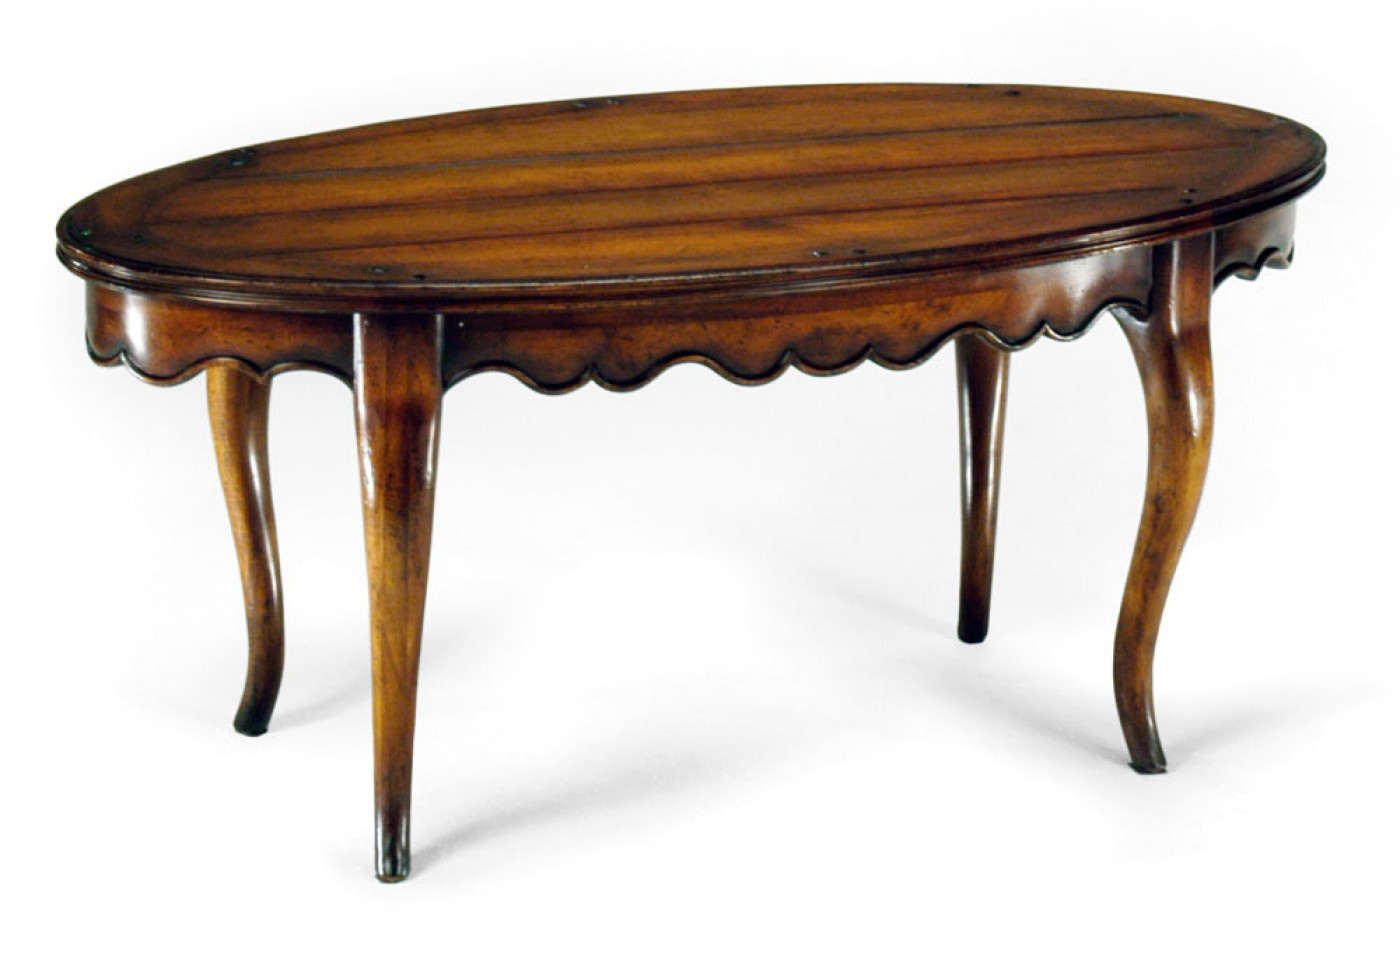 Table with oval top Country Farmhouse Jonathan Charles Luxury furniture MR